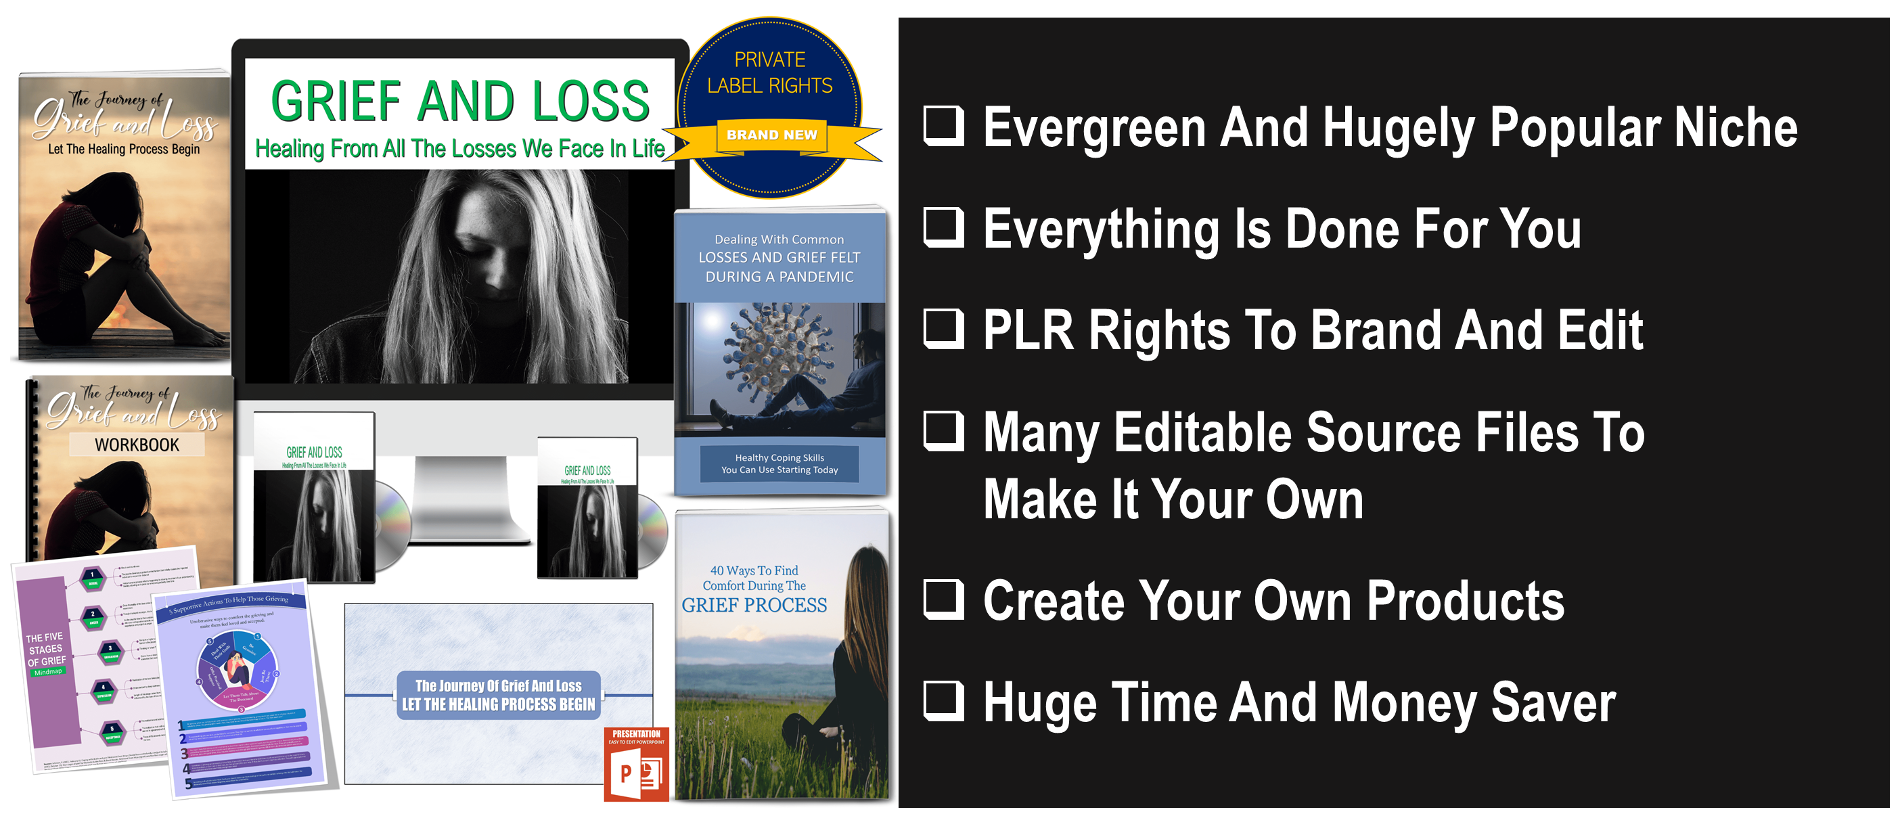 Grief and Loss Giant Content Pack with PLR Rights